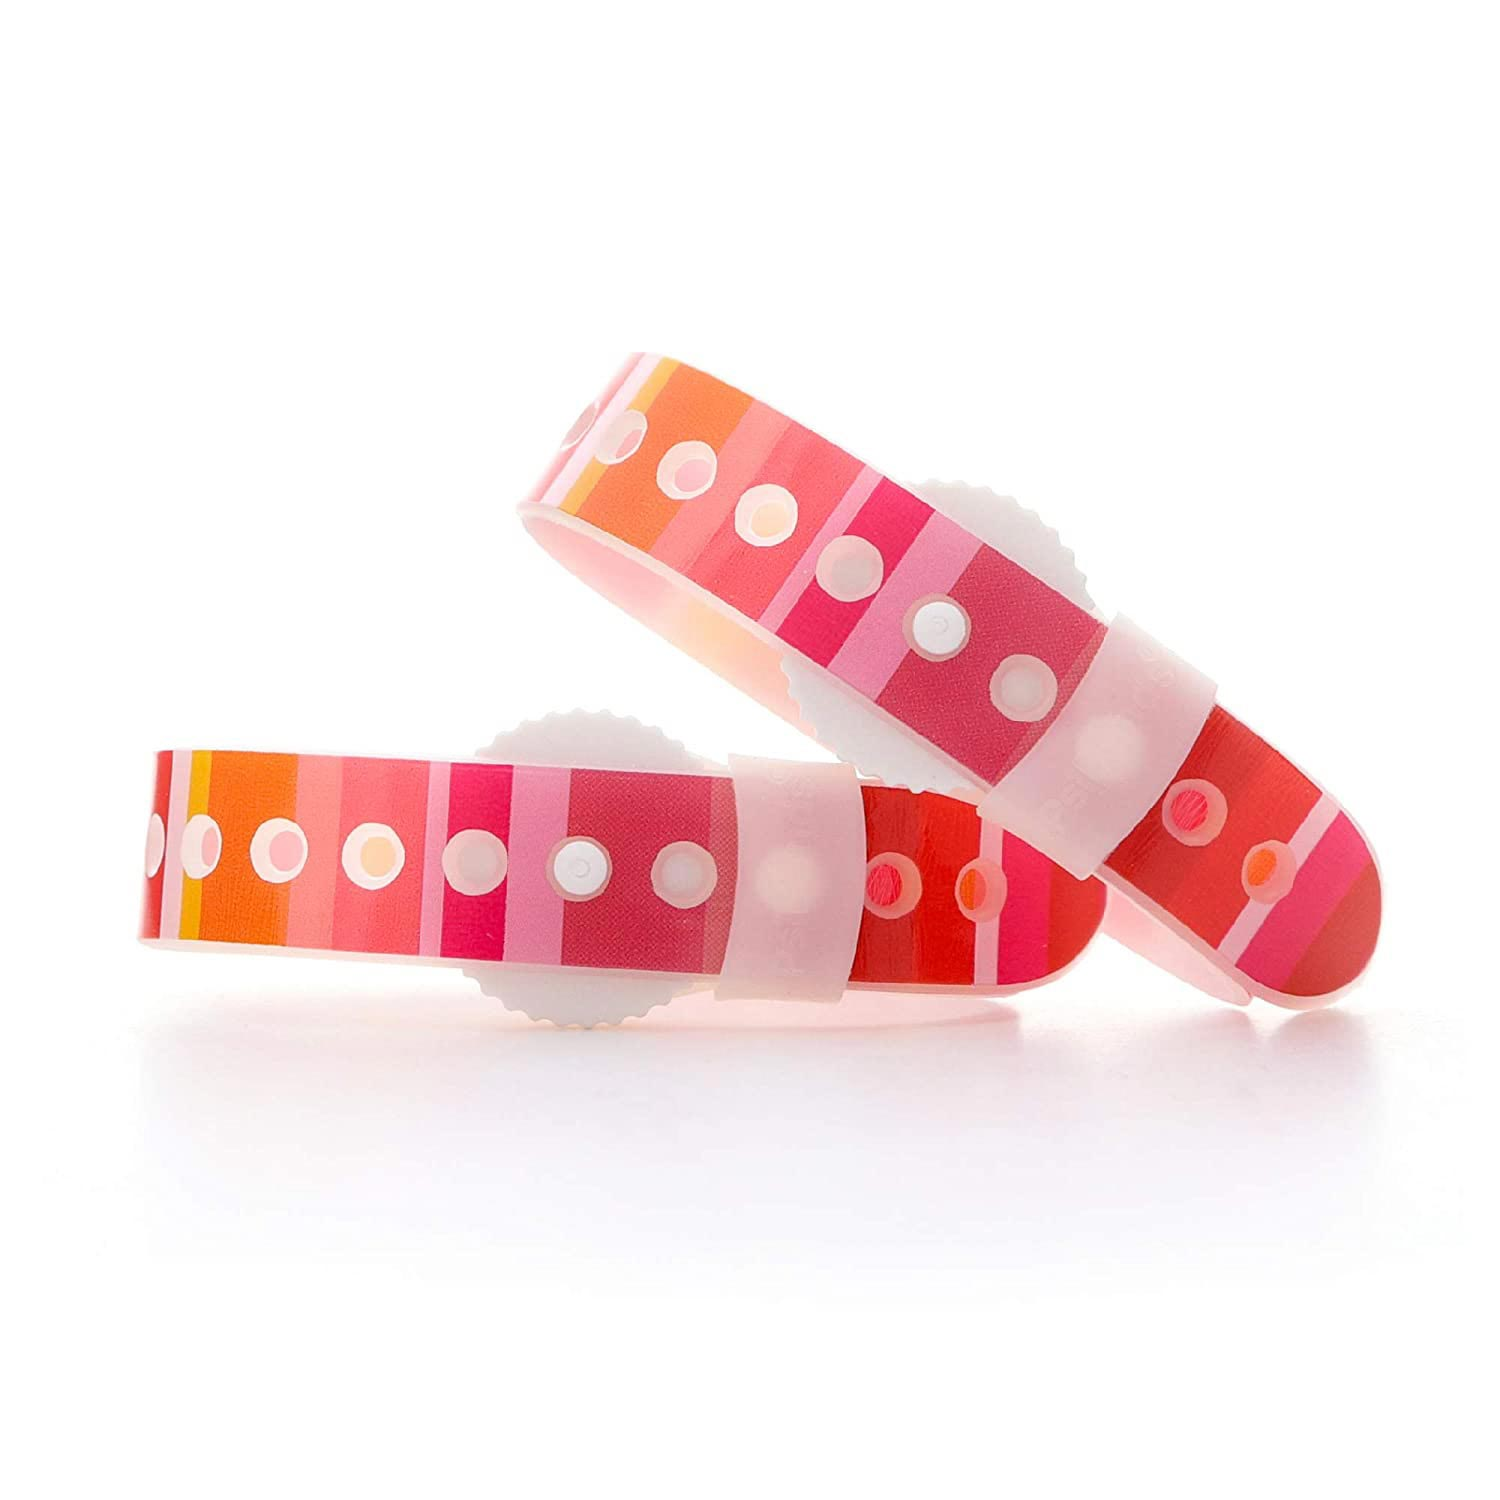 PSI Health Solutions Acupressure Wrist Band Color Play